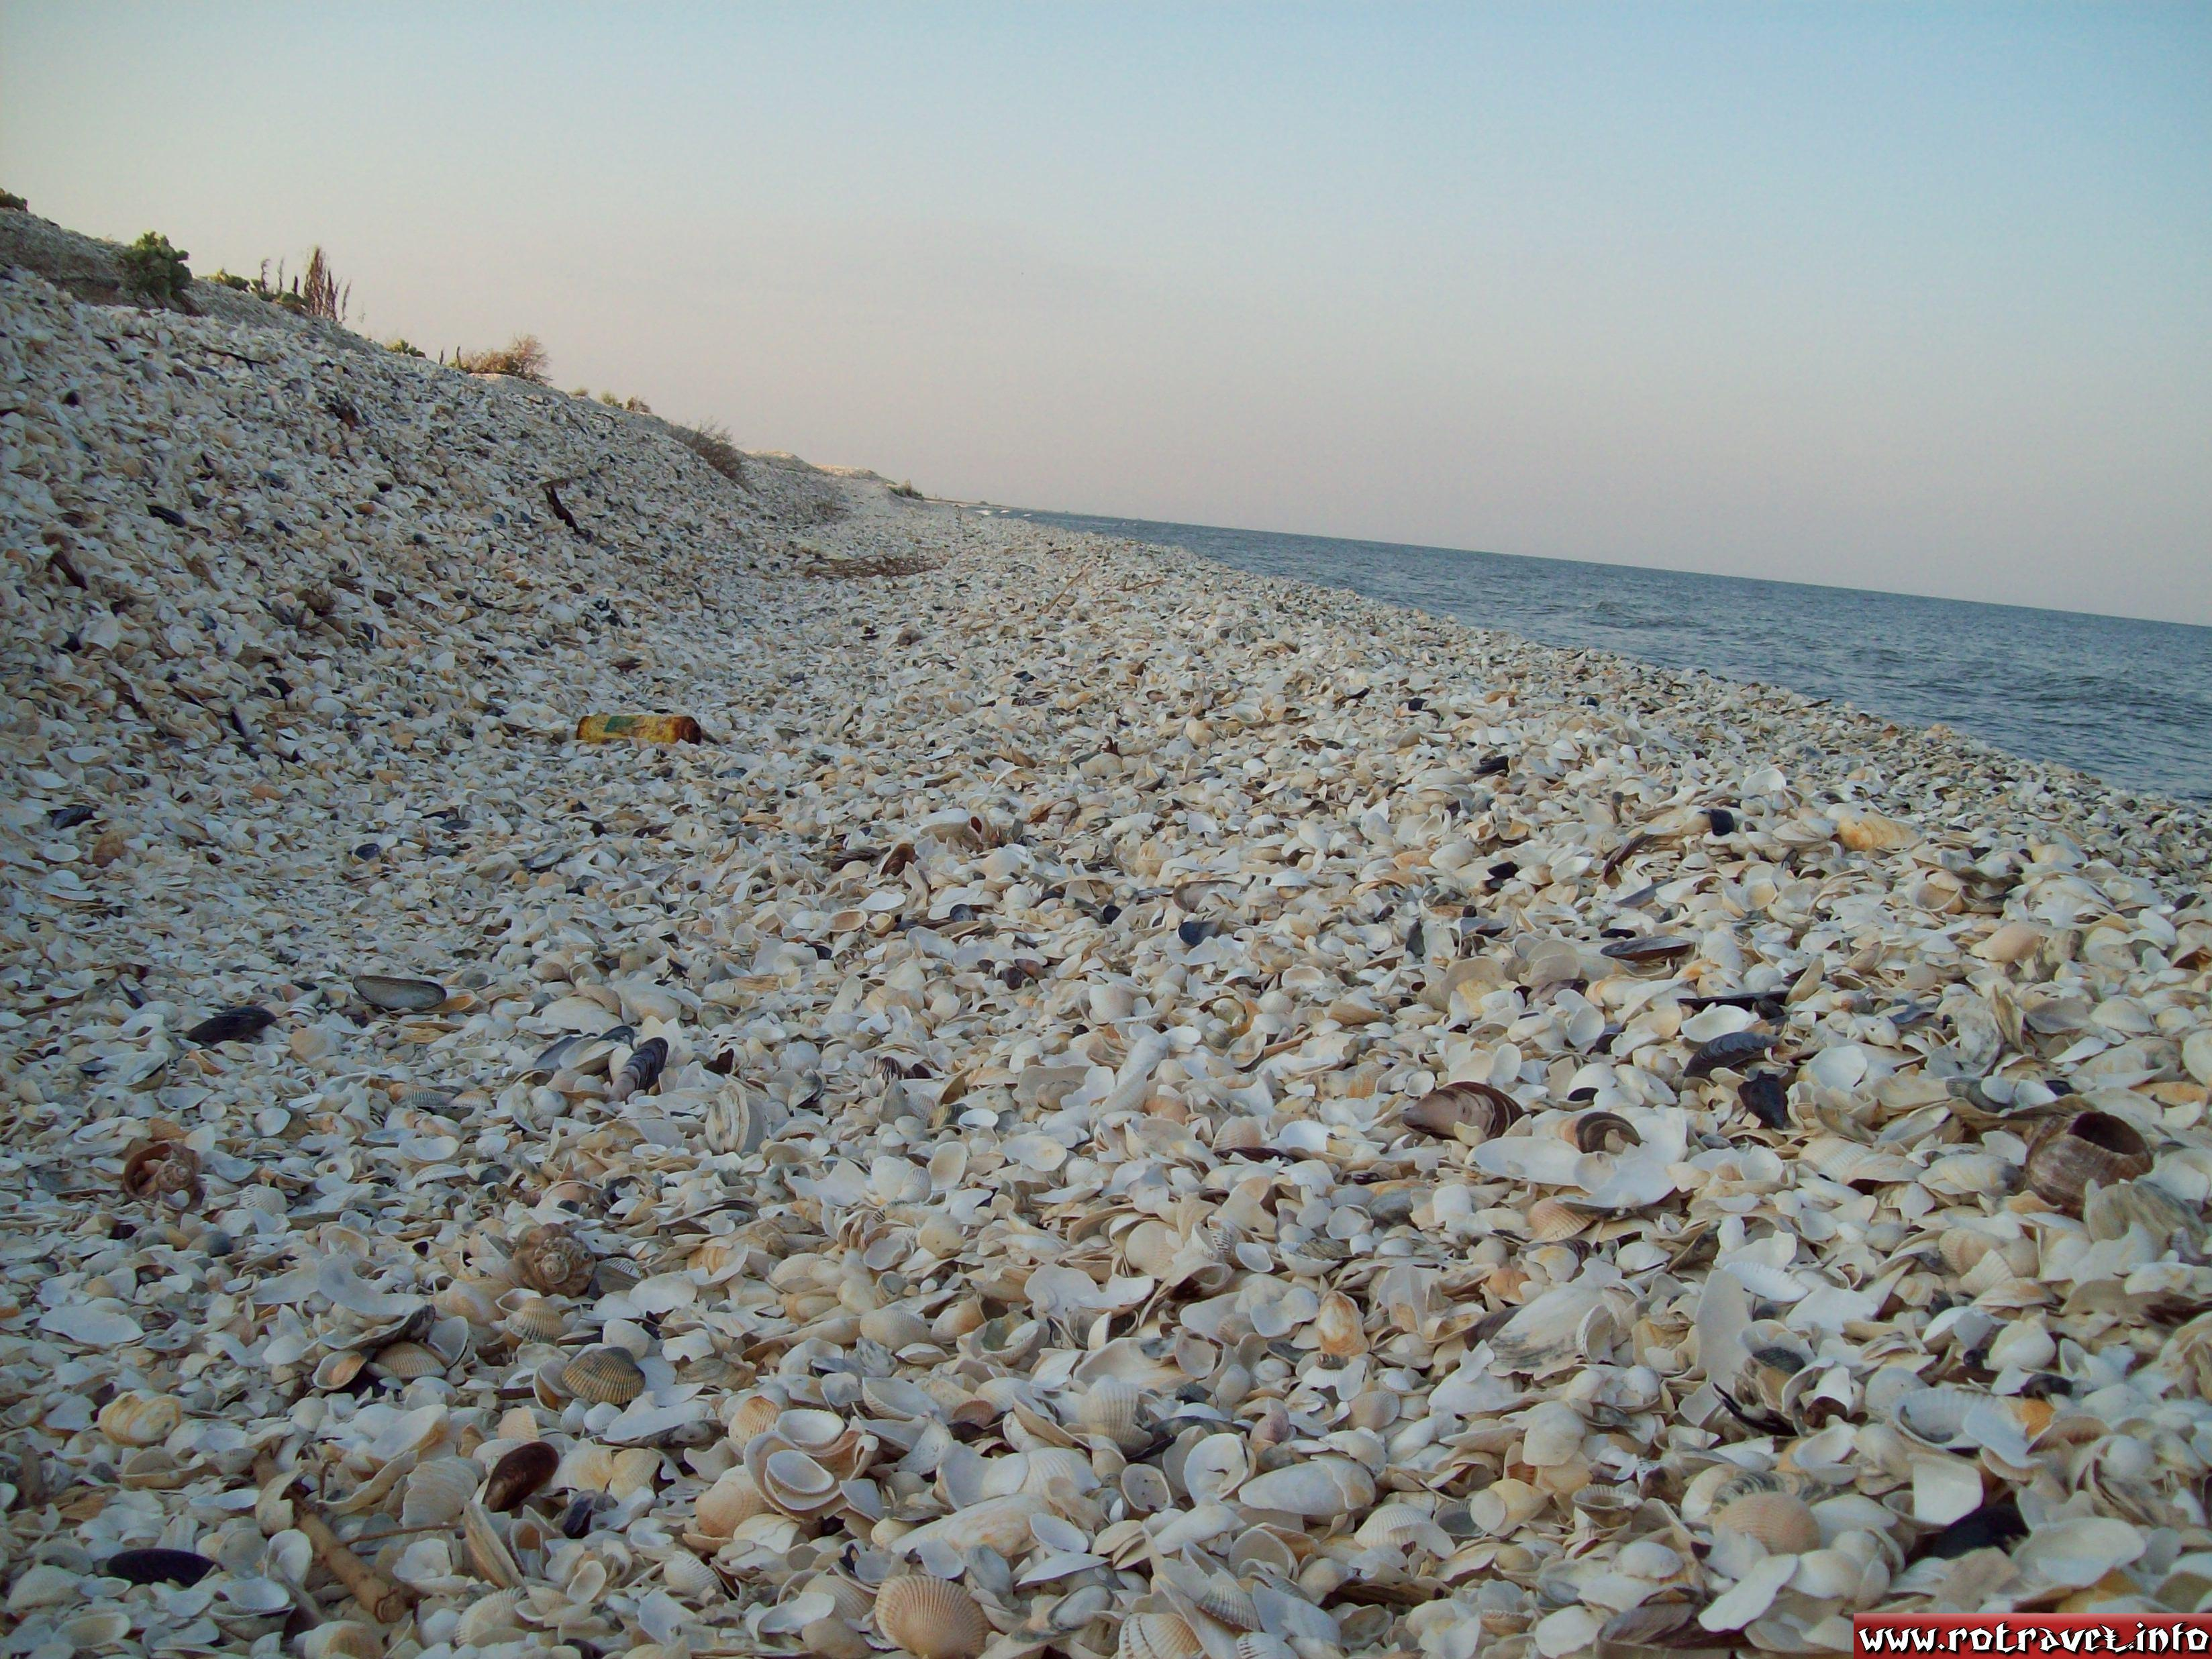 Millions of sea shells...